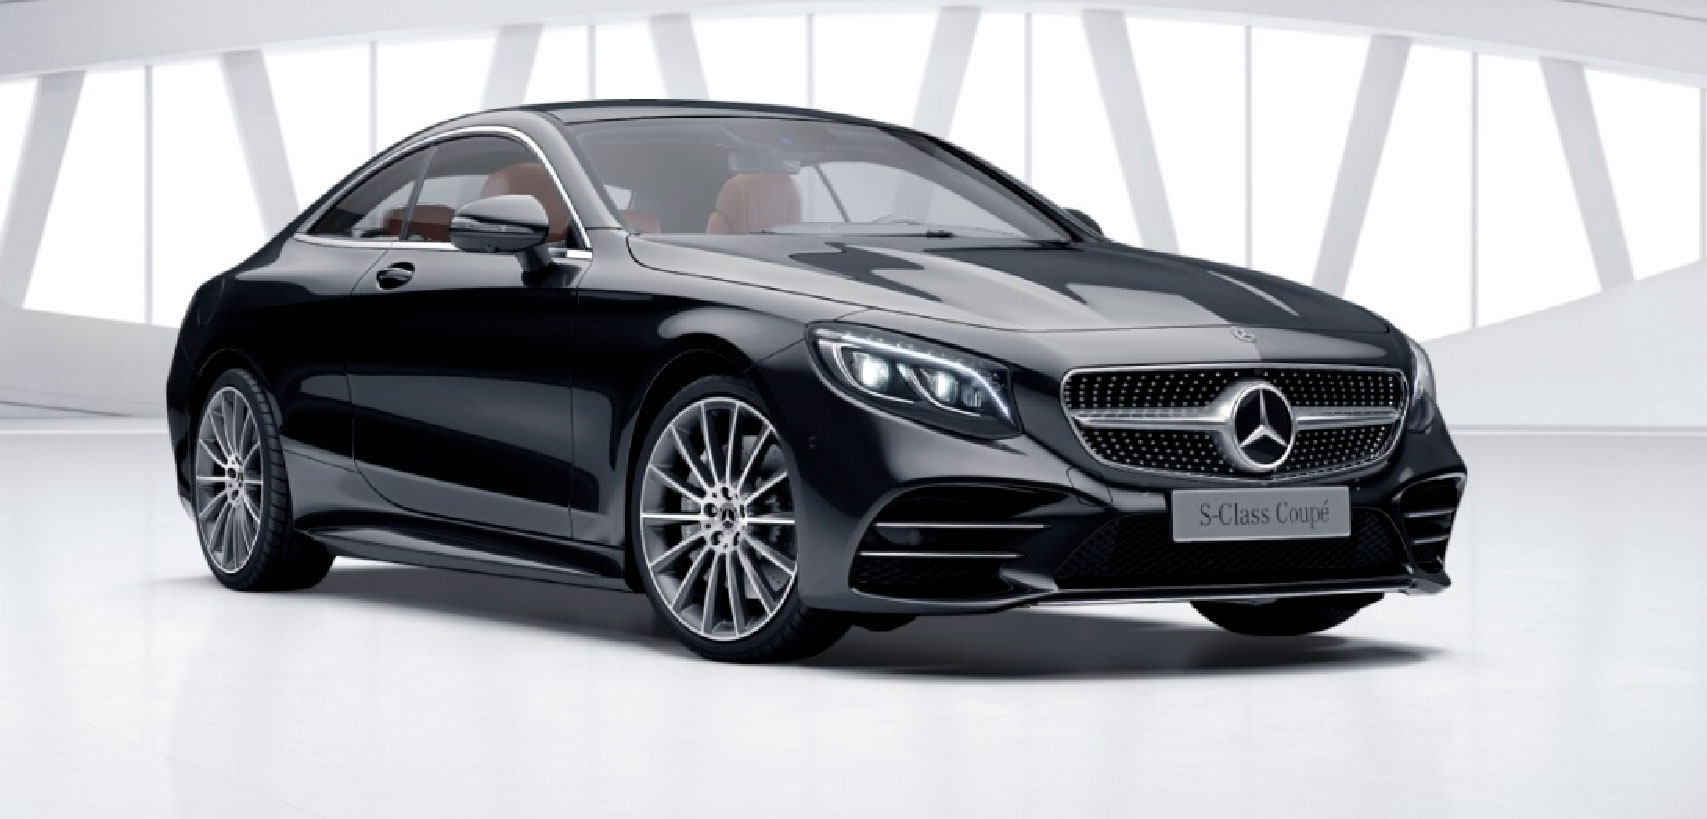 Mercedes-Benz S-Class Coupe 0952620034